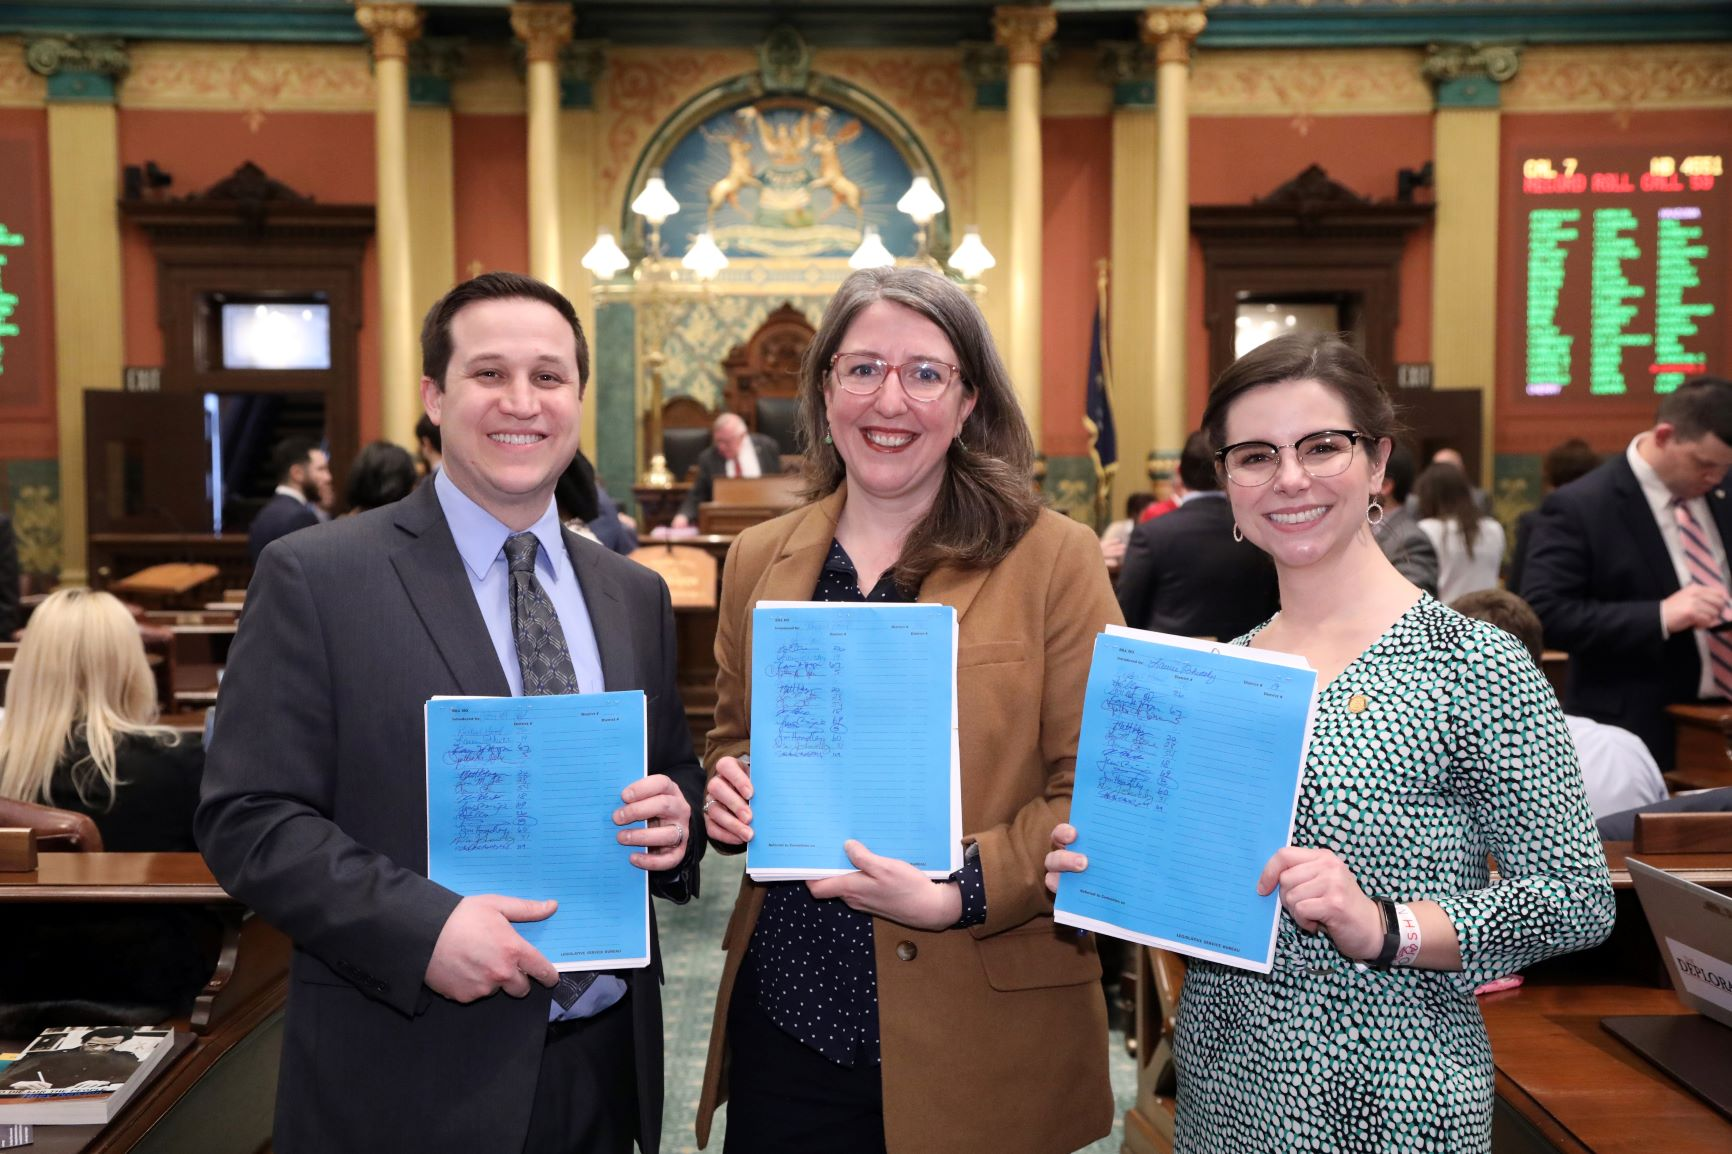 State Reps. Robert Wittenberg (D-Huntington Woods), Rachel Hood (D-Grand Rapids), Laurie Pohutsky (D-Livonia) introducing House Bills 5499-5501 to update Michigan's sexual education curriculum on the House floor in Lansing on Feb. 18, 2020